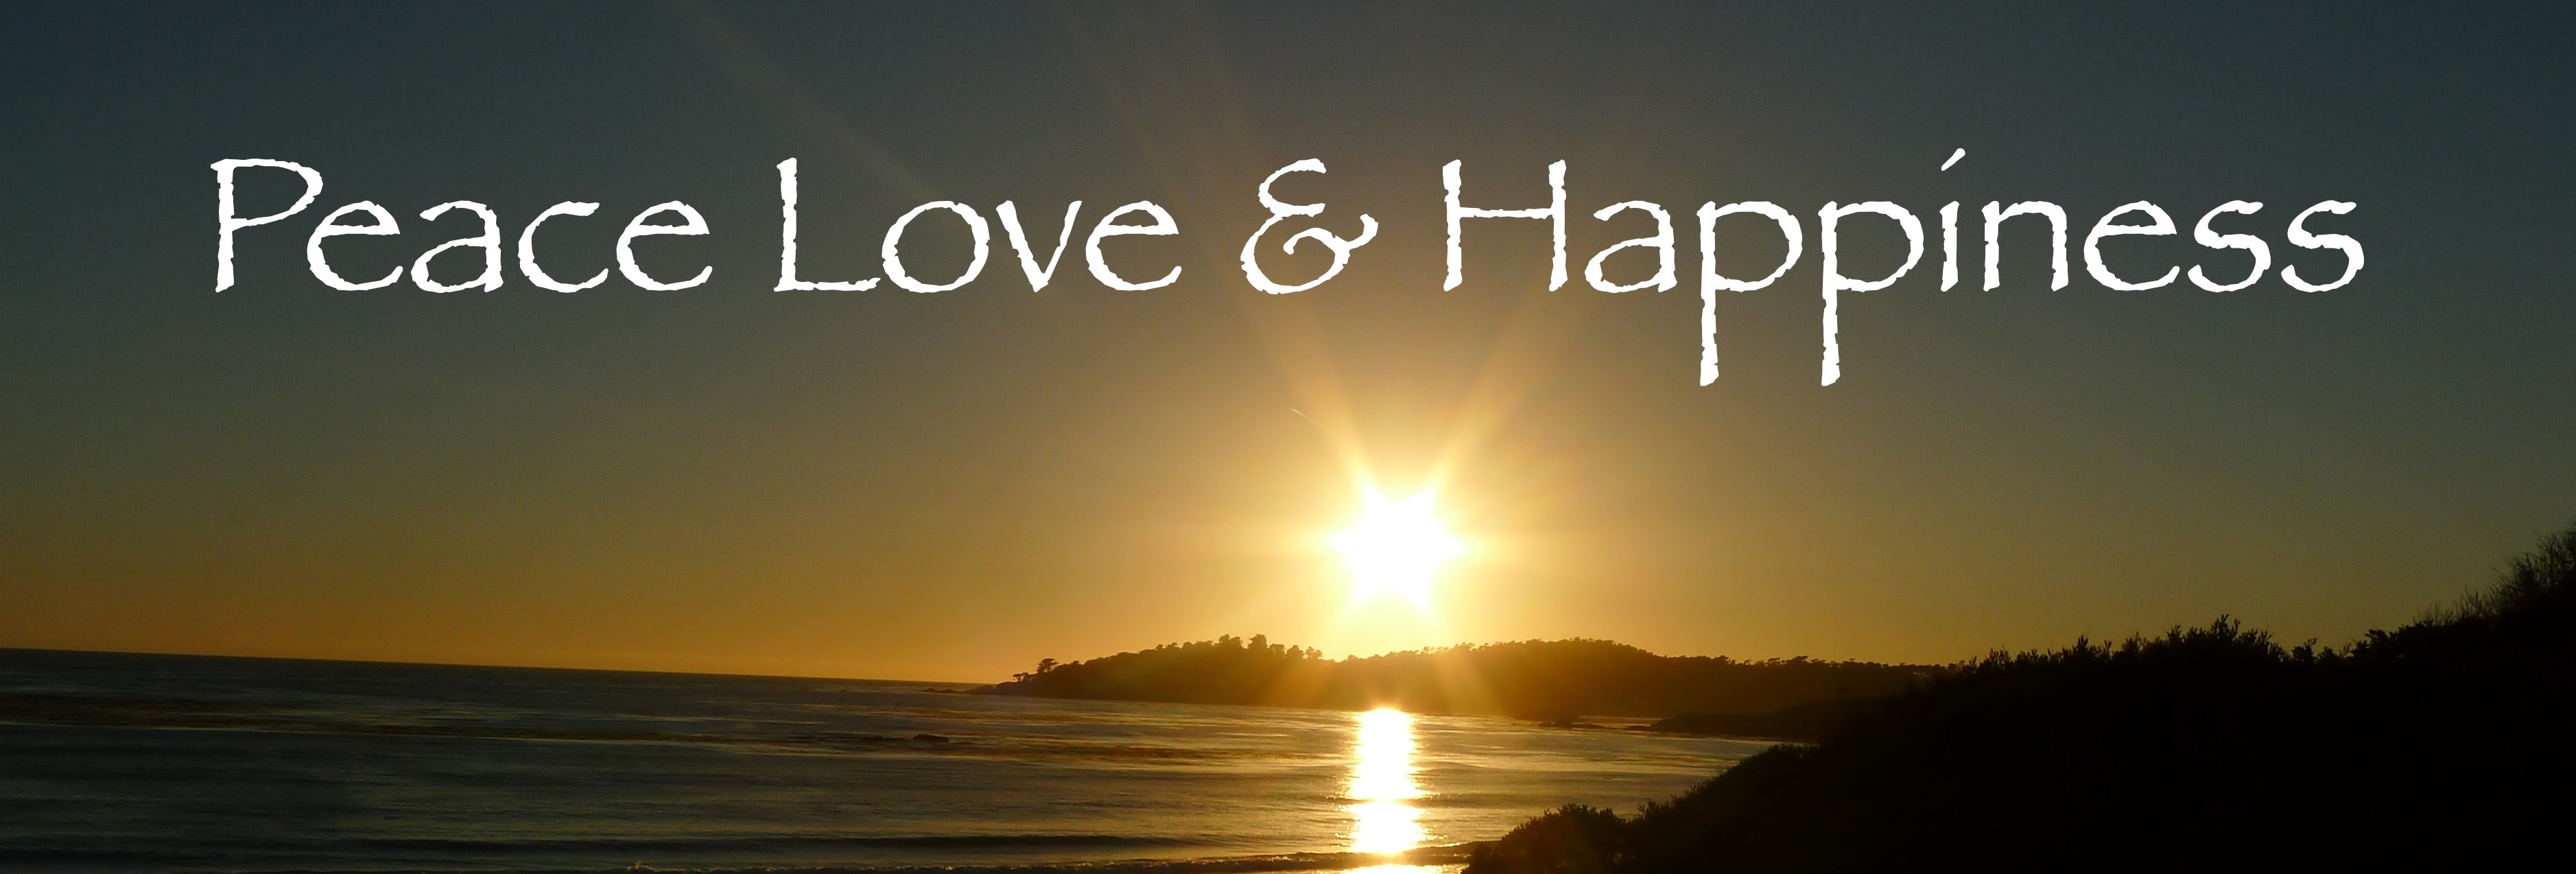 Quotes About Peace And Happiness Quotes About Peace Happiness And Love 43 Quotes